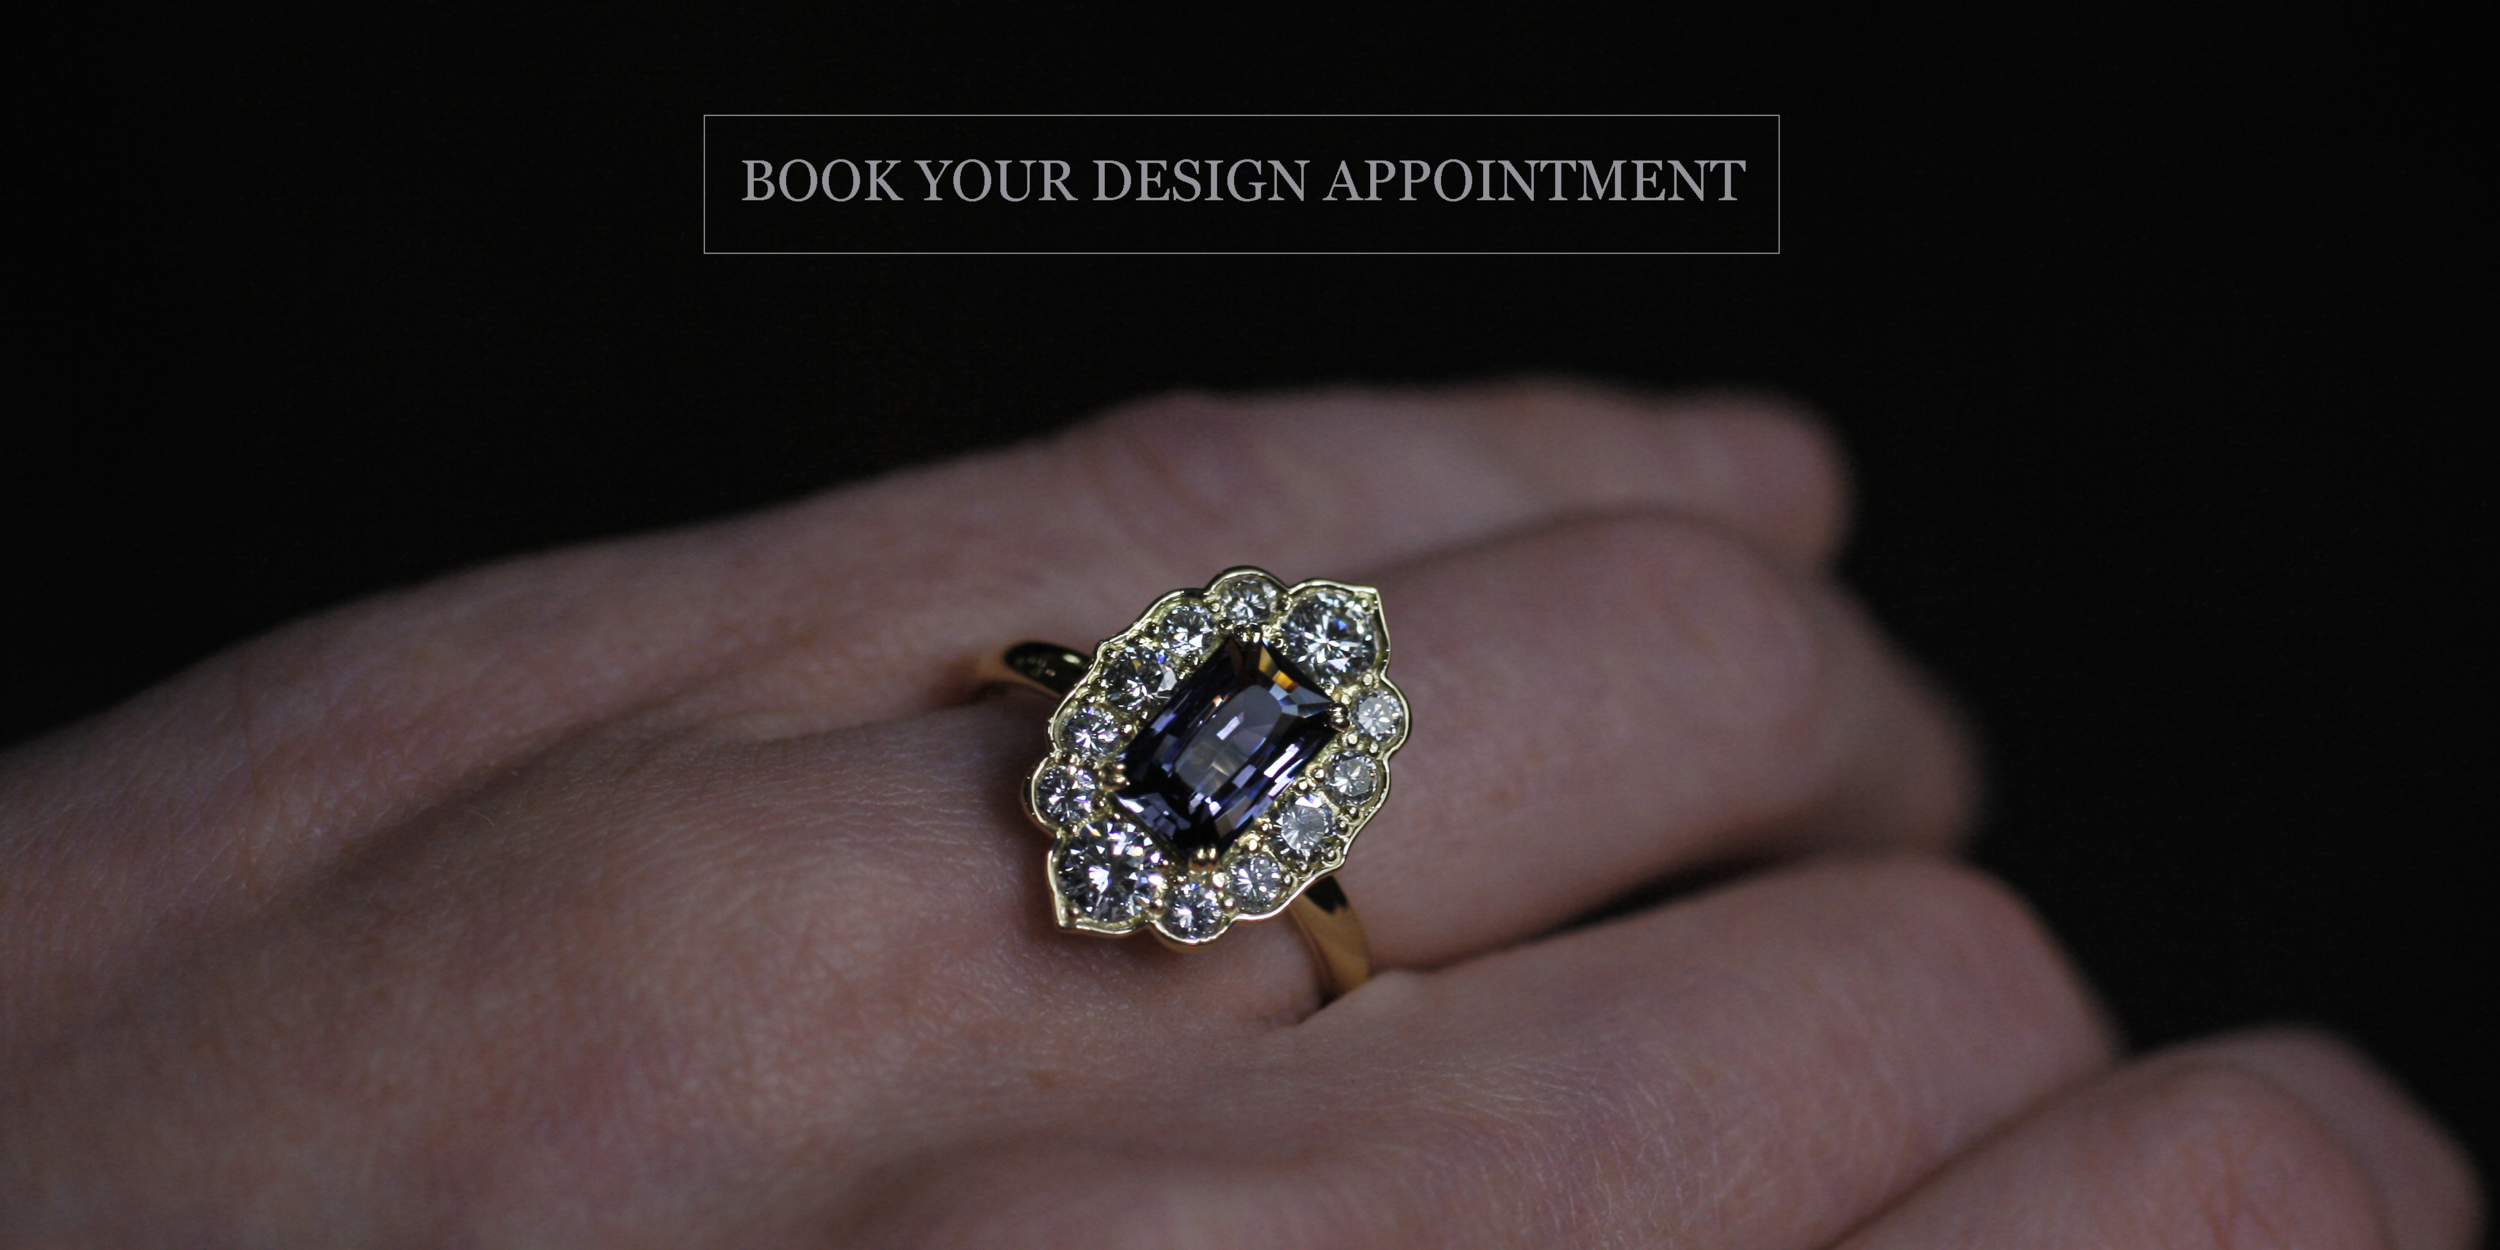 Book_your_design_appoinment.png